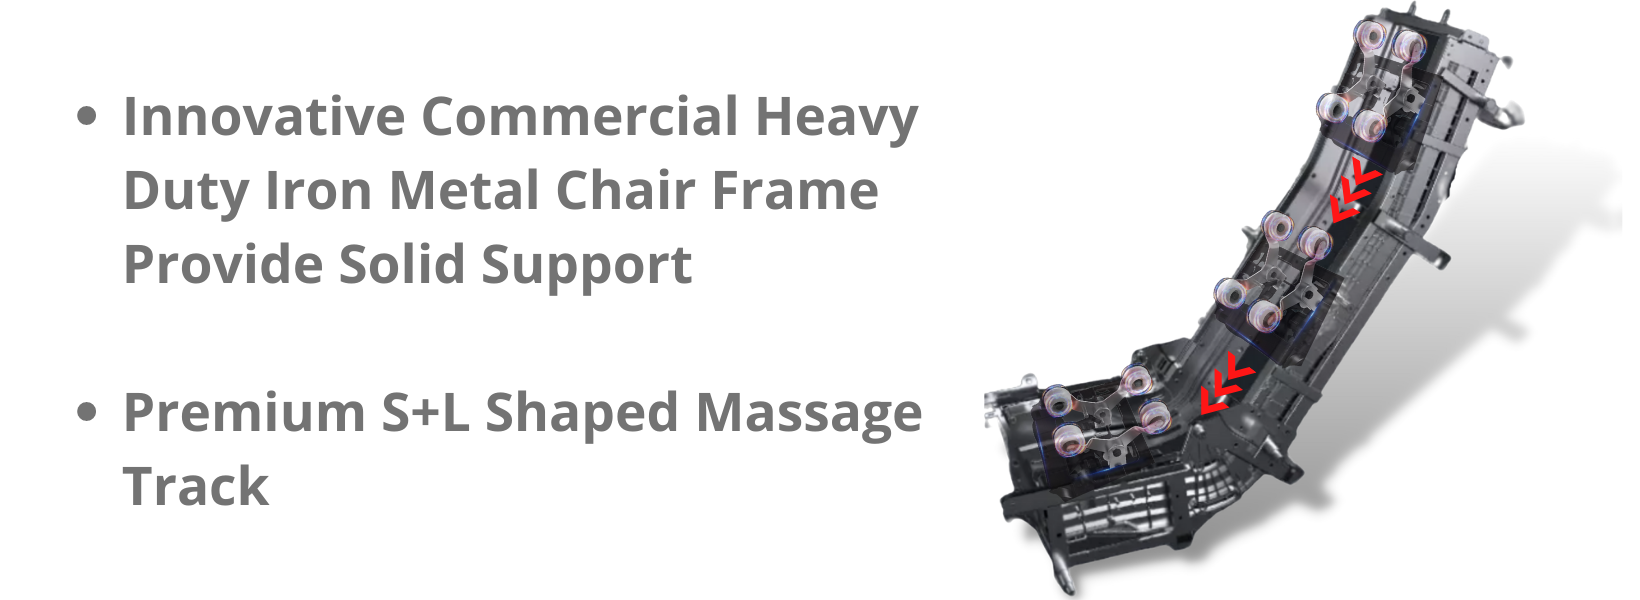 """Innovative Commercial Heavy Duty Iron Metal Chair Frame Provide Solid Support: The iron frame connects the guide track and provides solid support for the chair. The square tube we use for the chair frame, 1"""" thicker than the C channel iron frame, is more rugged than the equivalent quality C channel iron frame.  Premium S+L Shaped Massage Track: Advanced Multi-Dimensional Massage Technology with S+L-track systems extends massage coverage from the top of the shoulders to the bottom of the gluts."""